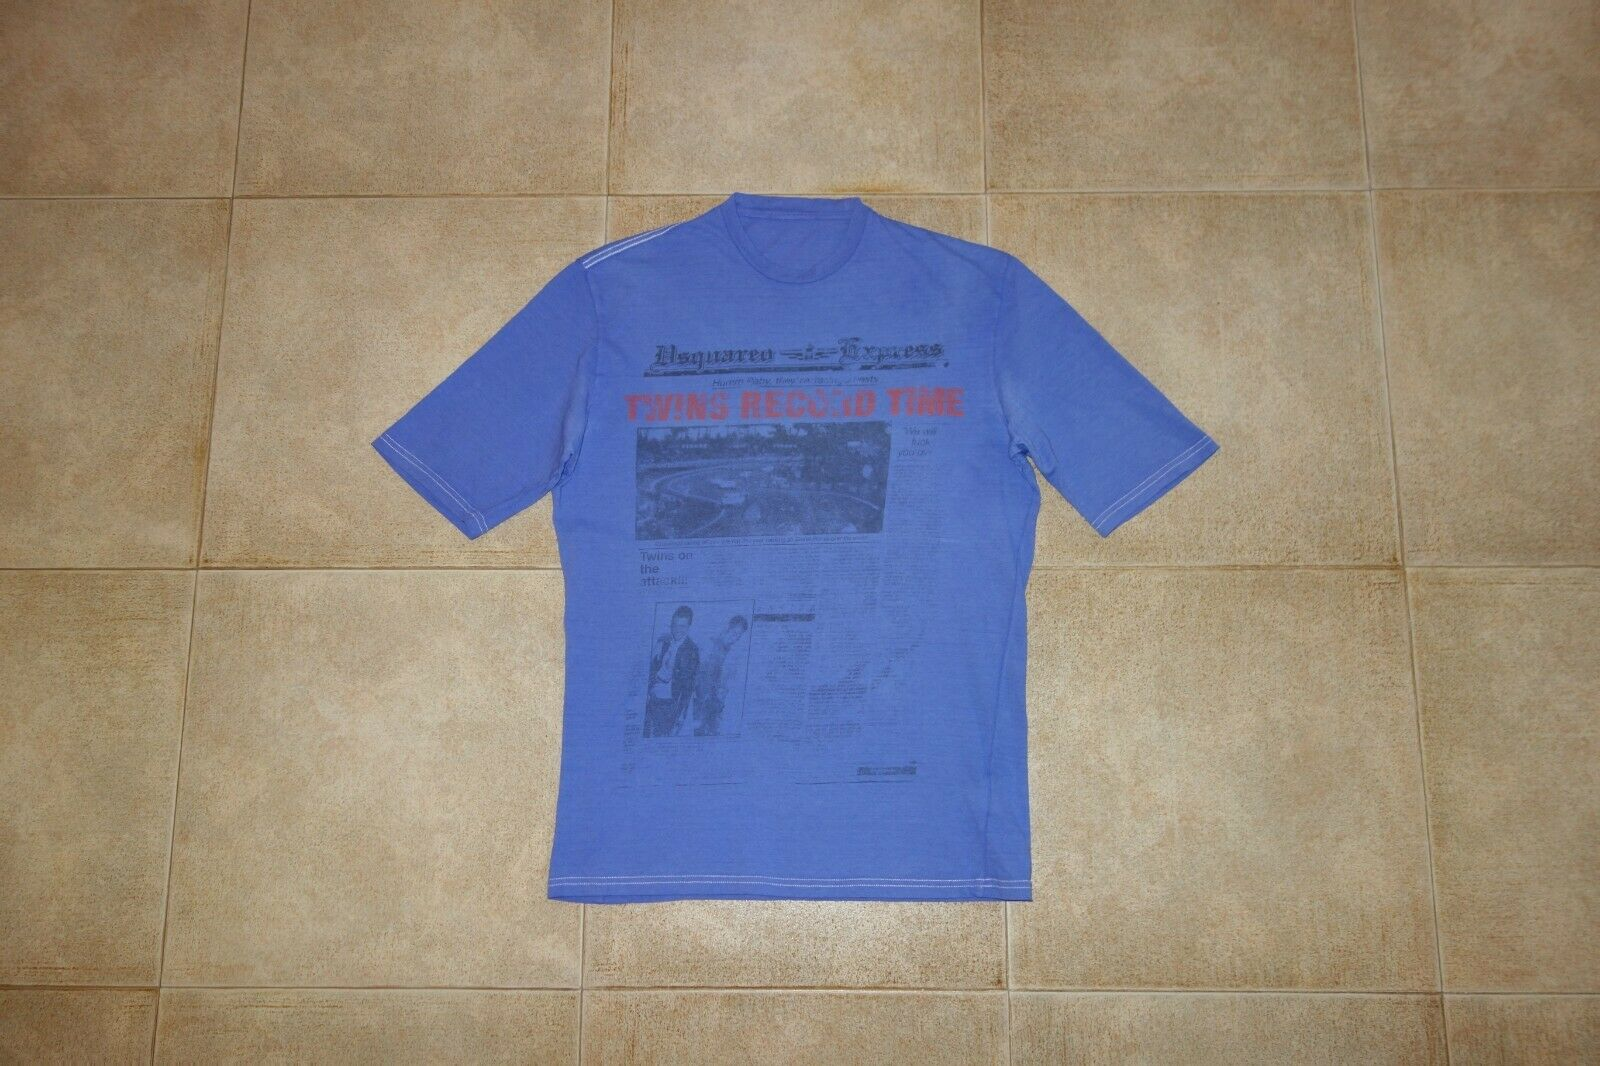 Dsquared² Runway TWINS RECORD TIME Cotton-Canapa T-shirt M SS 08 71GC331, RARE